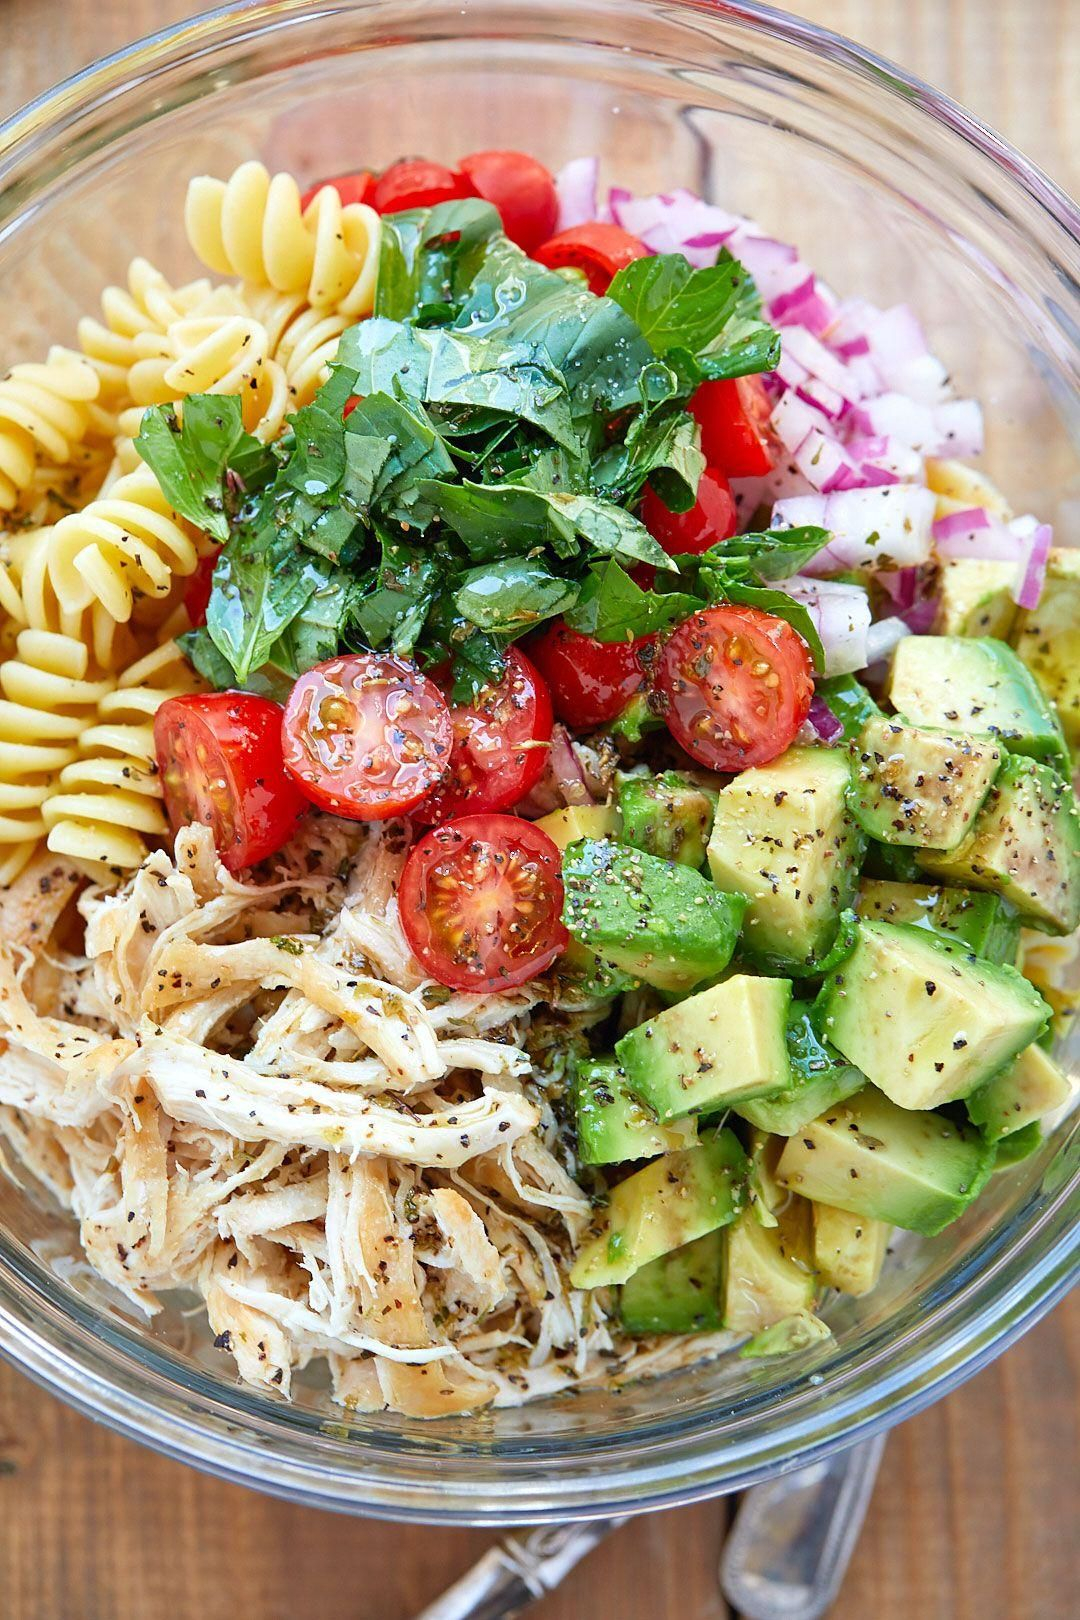 Healthy Chicken Pasta Salad with Avocado, Tomato, and Basil  - What's for Dinner? -